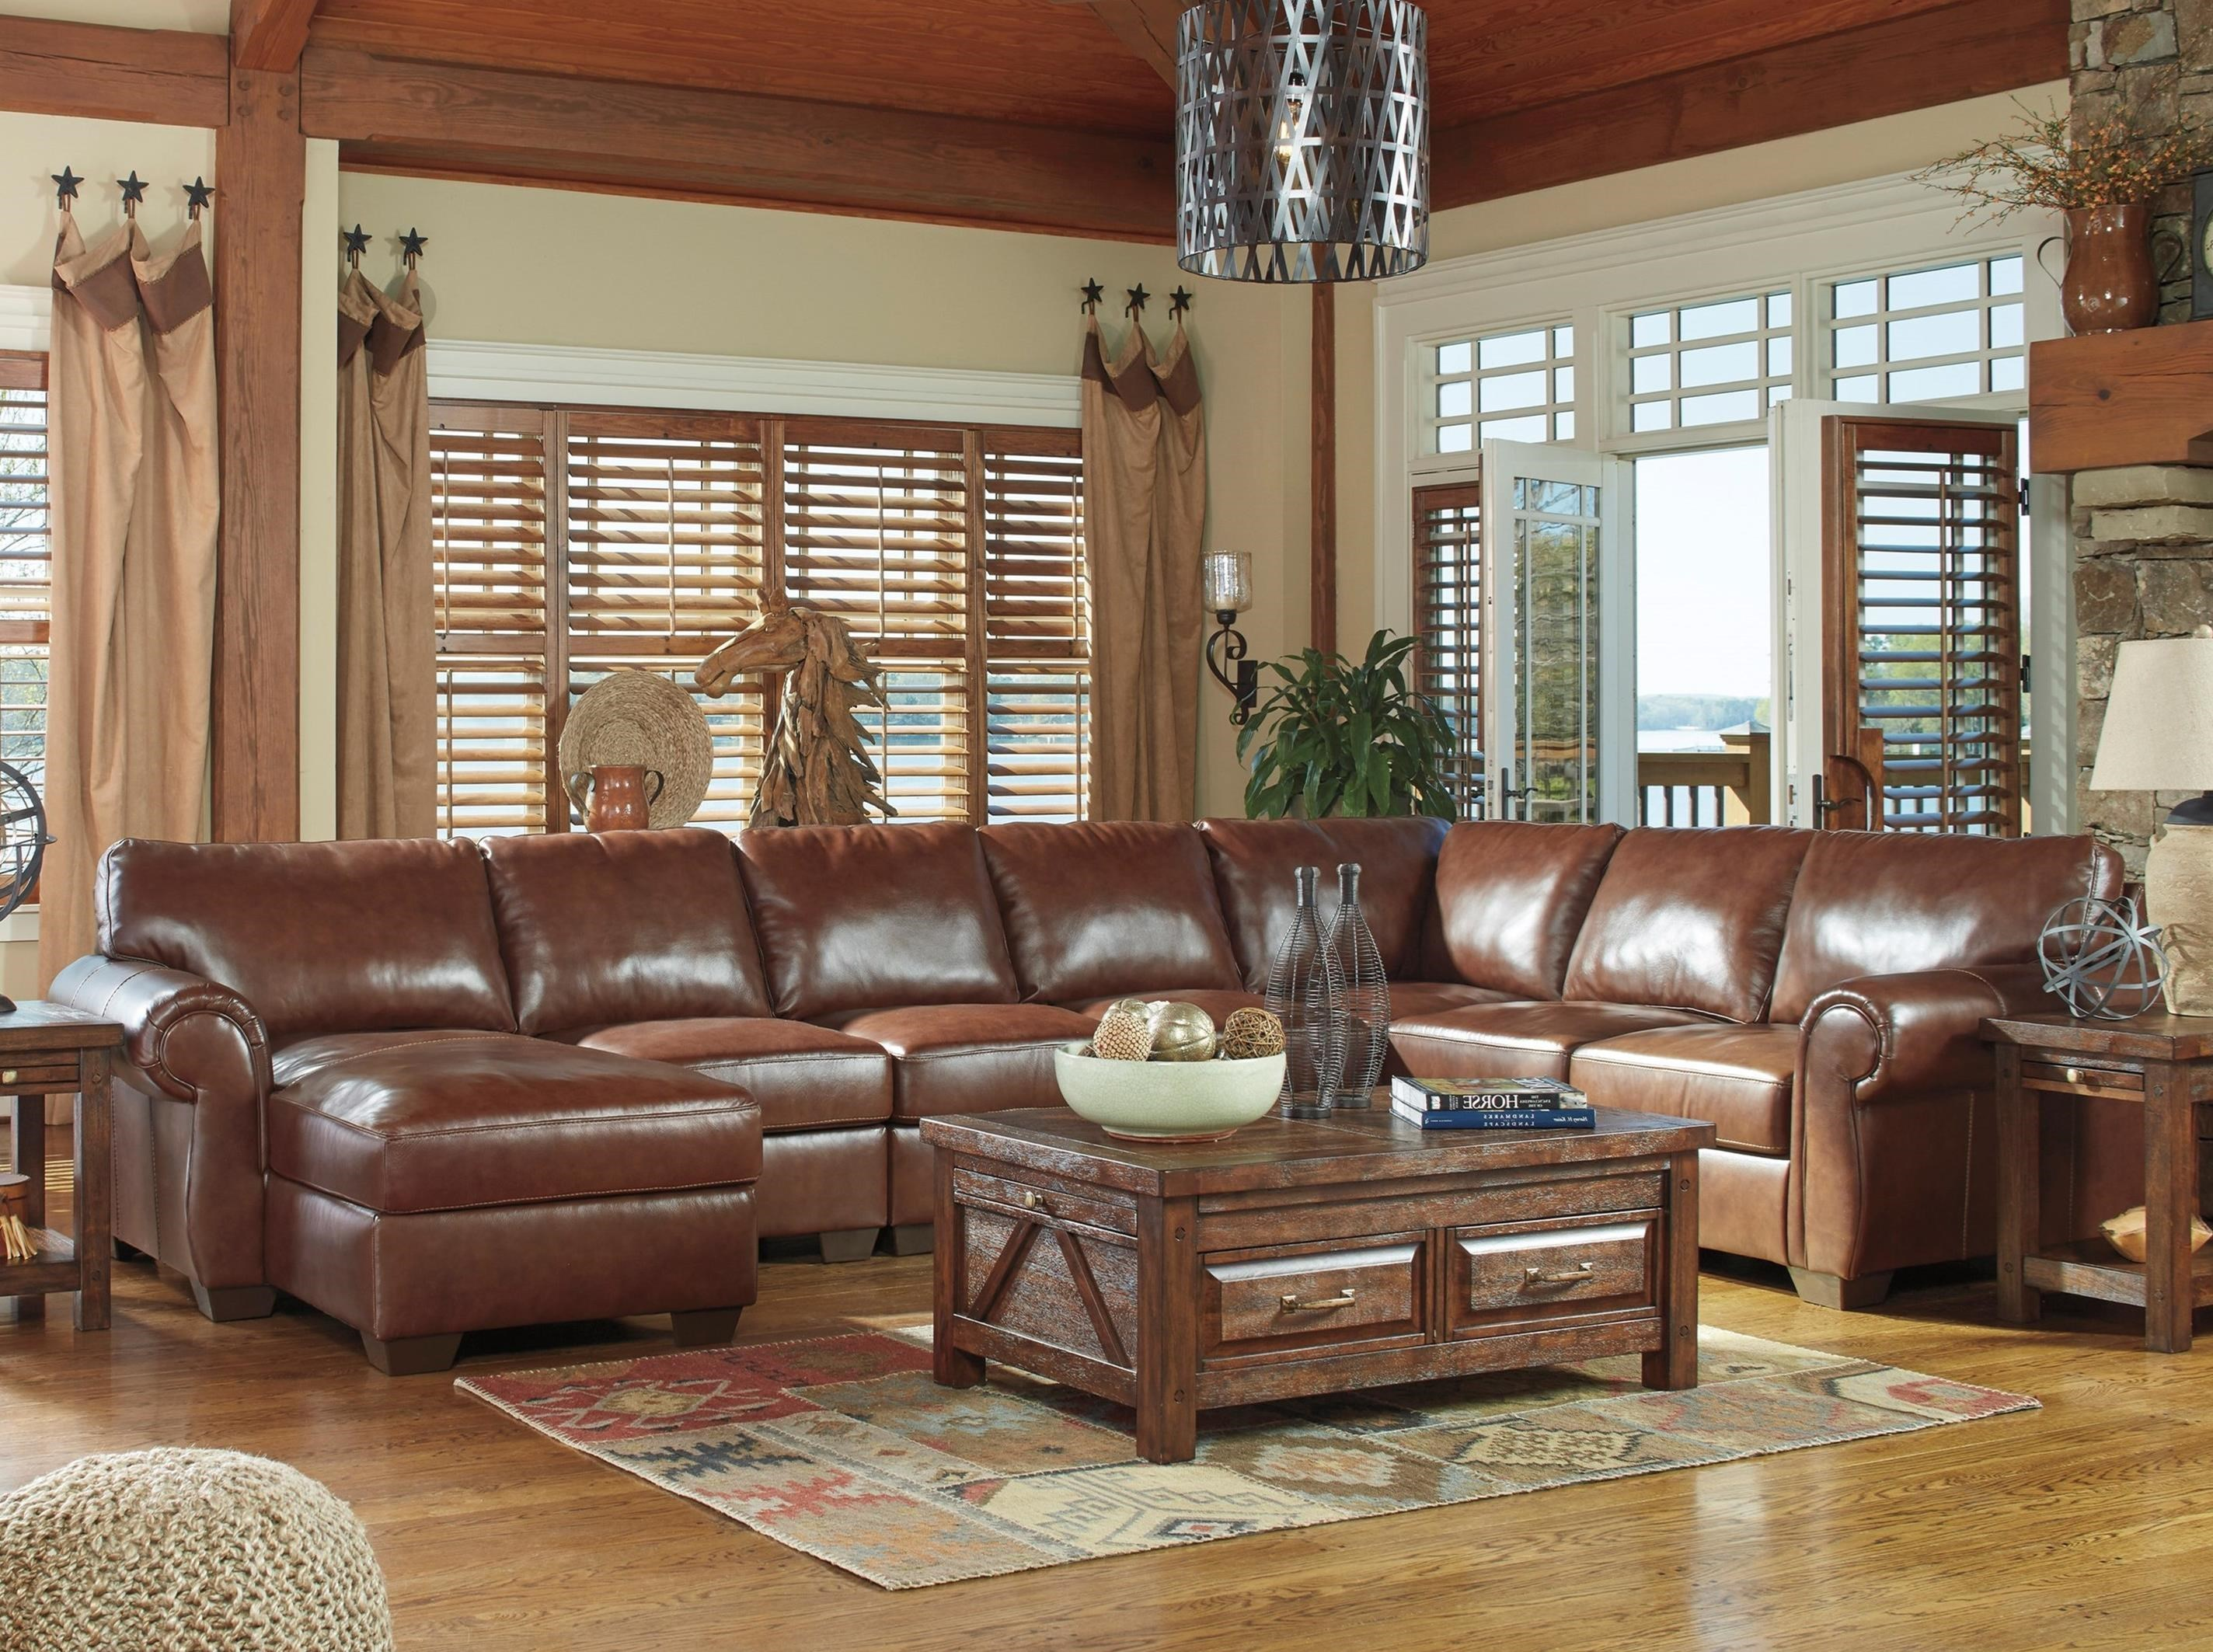 Signature Design by Ashley Lugoro Leather Match 5-Piece Sectional with Left Chaise  sc 1 st  Value City Furniture : ashley sofa sectional - Sectionals, Sofas & Couches